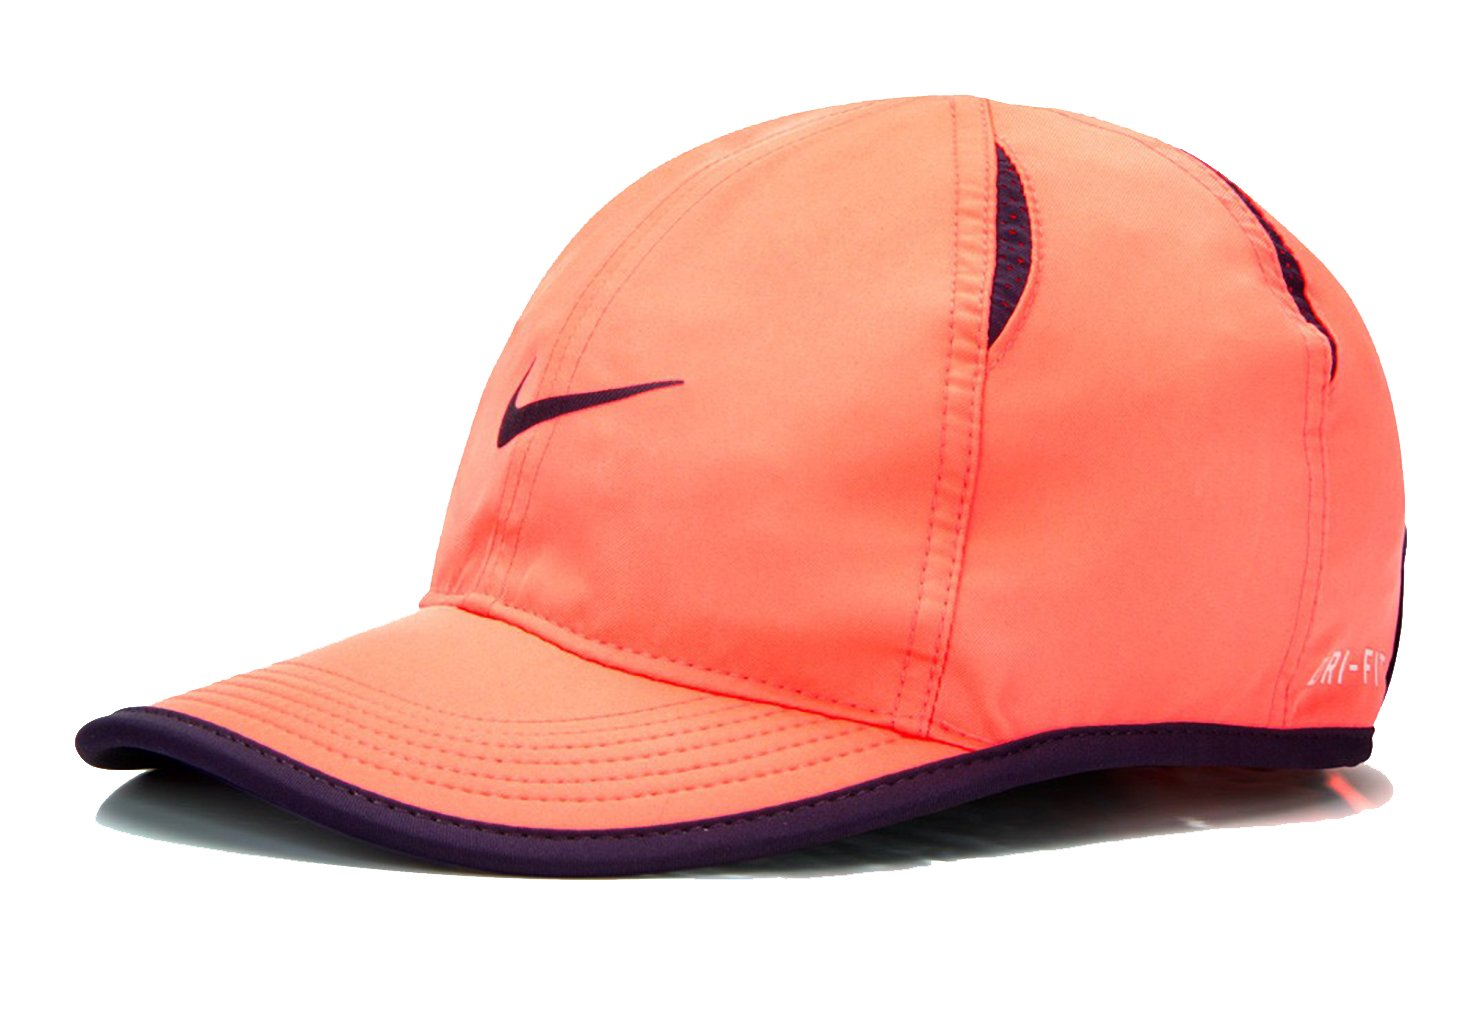 Nike WOMEN's Feather light Tennis Hat (MANGO/Black, One Size)